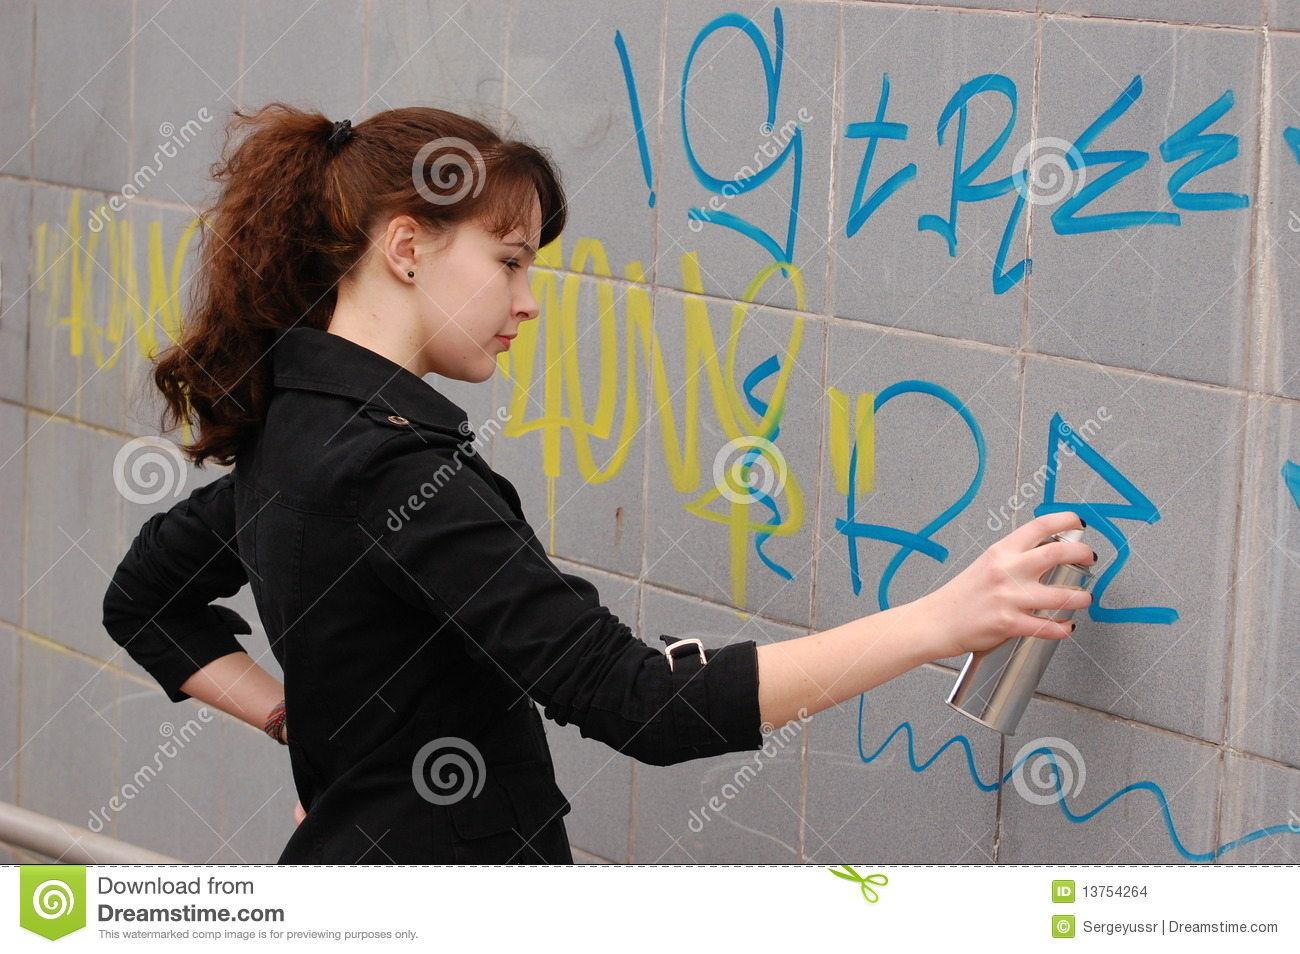 Teen girl and graffiti